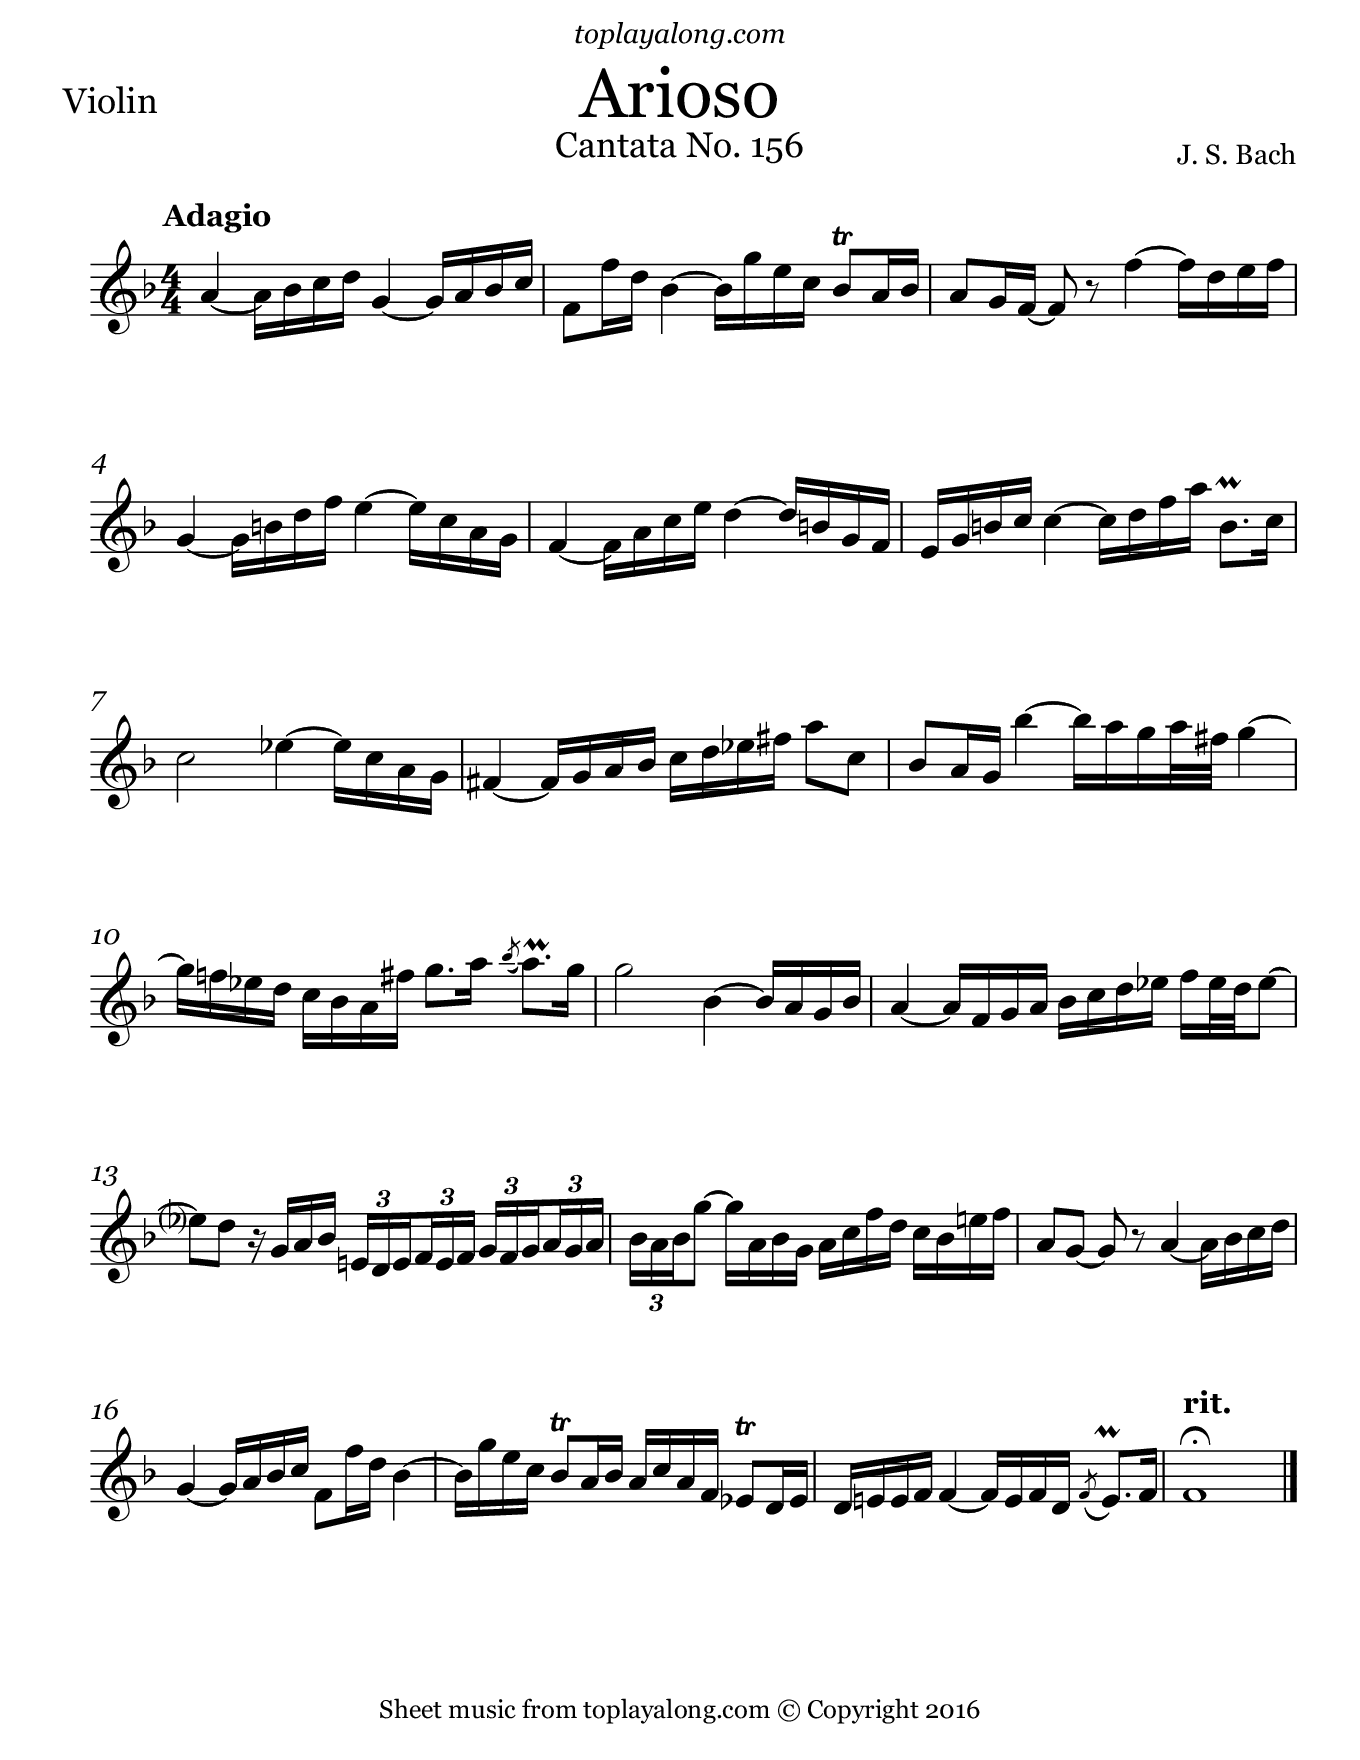 Arioso from Cantata BWV 156 by J. S. Bach. Sheet music for Violin, page 1.